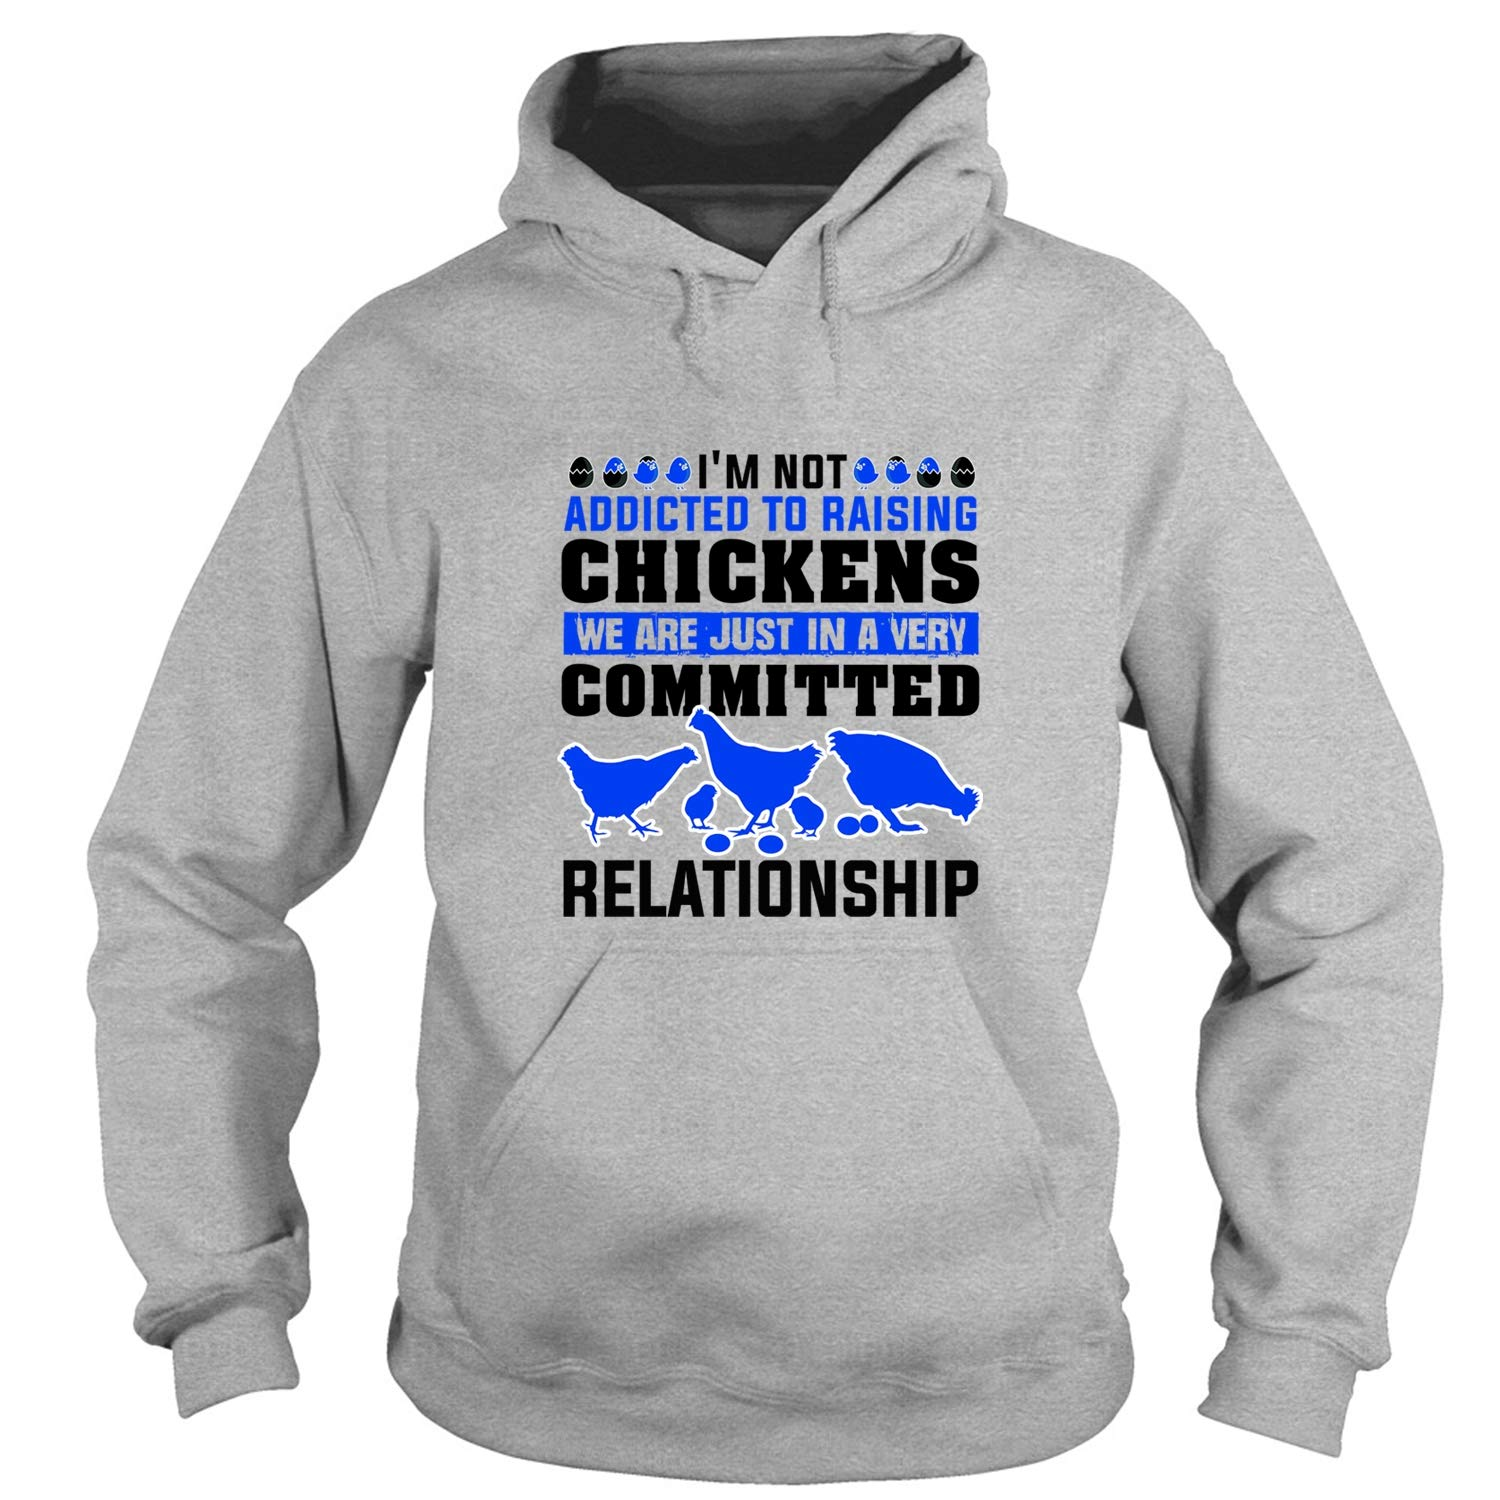 Amazon com: Chicken Lady Hoodies, I'm Not Addicted to